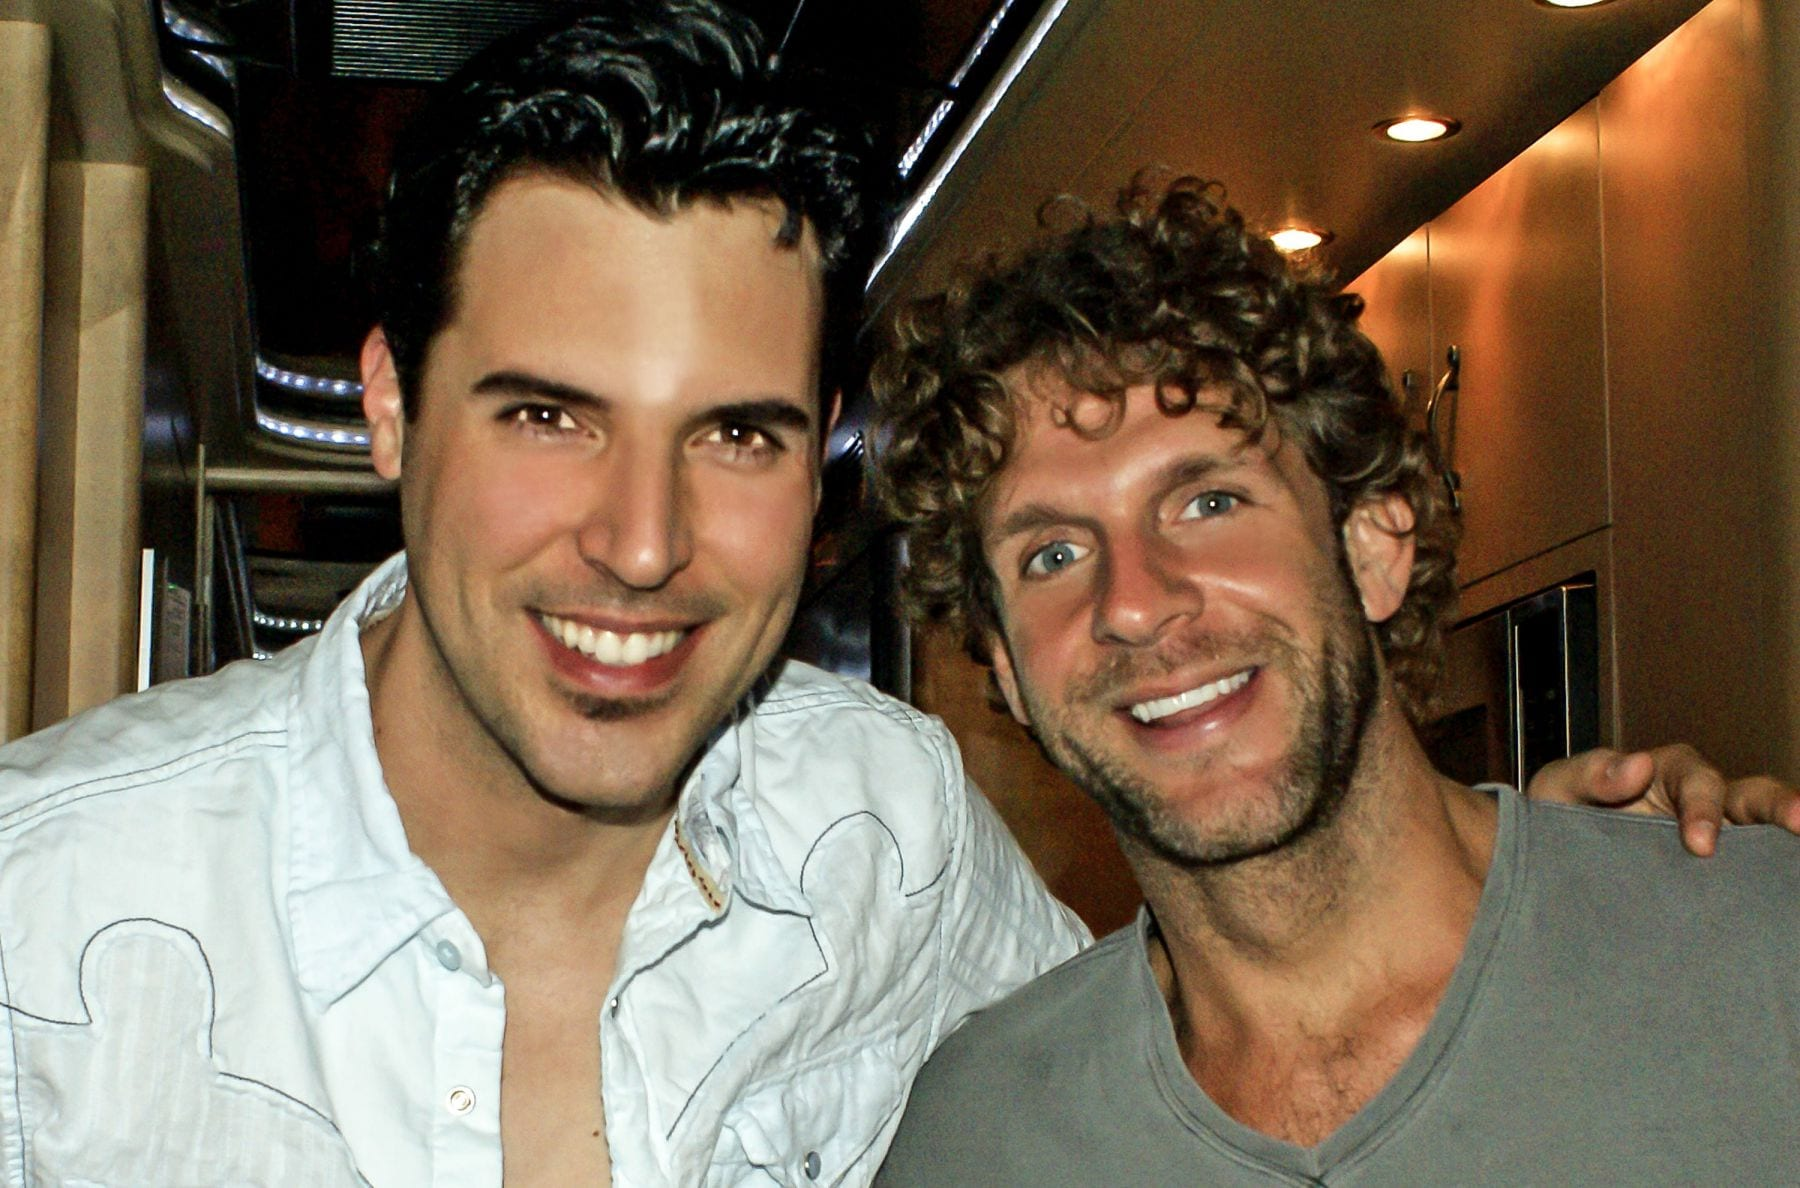 FRANKIE TOURS WITH BILLY CURRINGTON